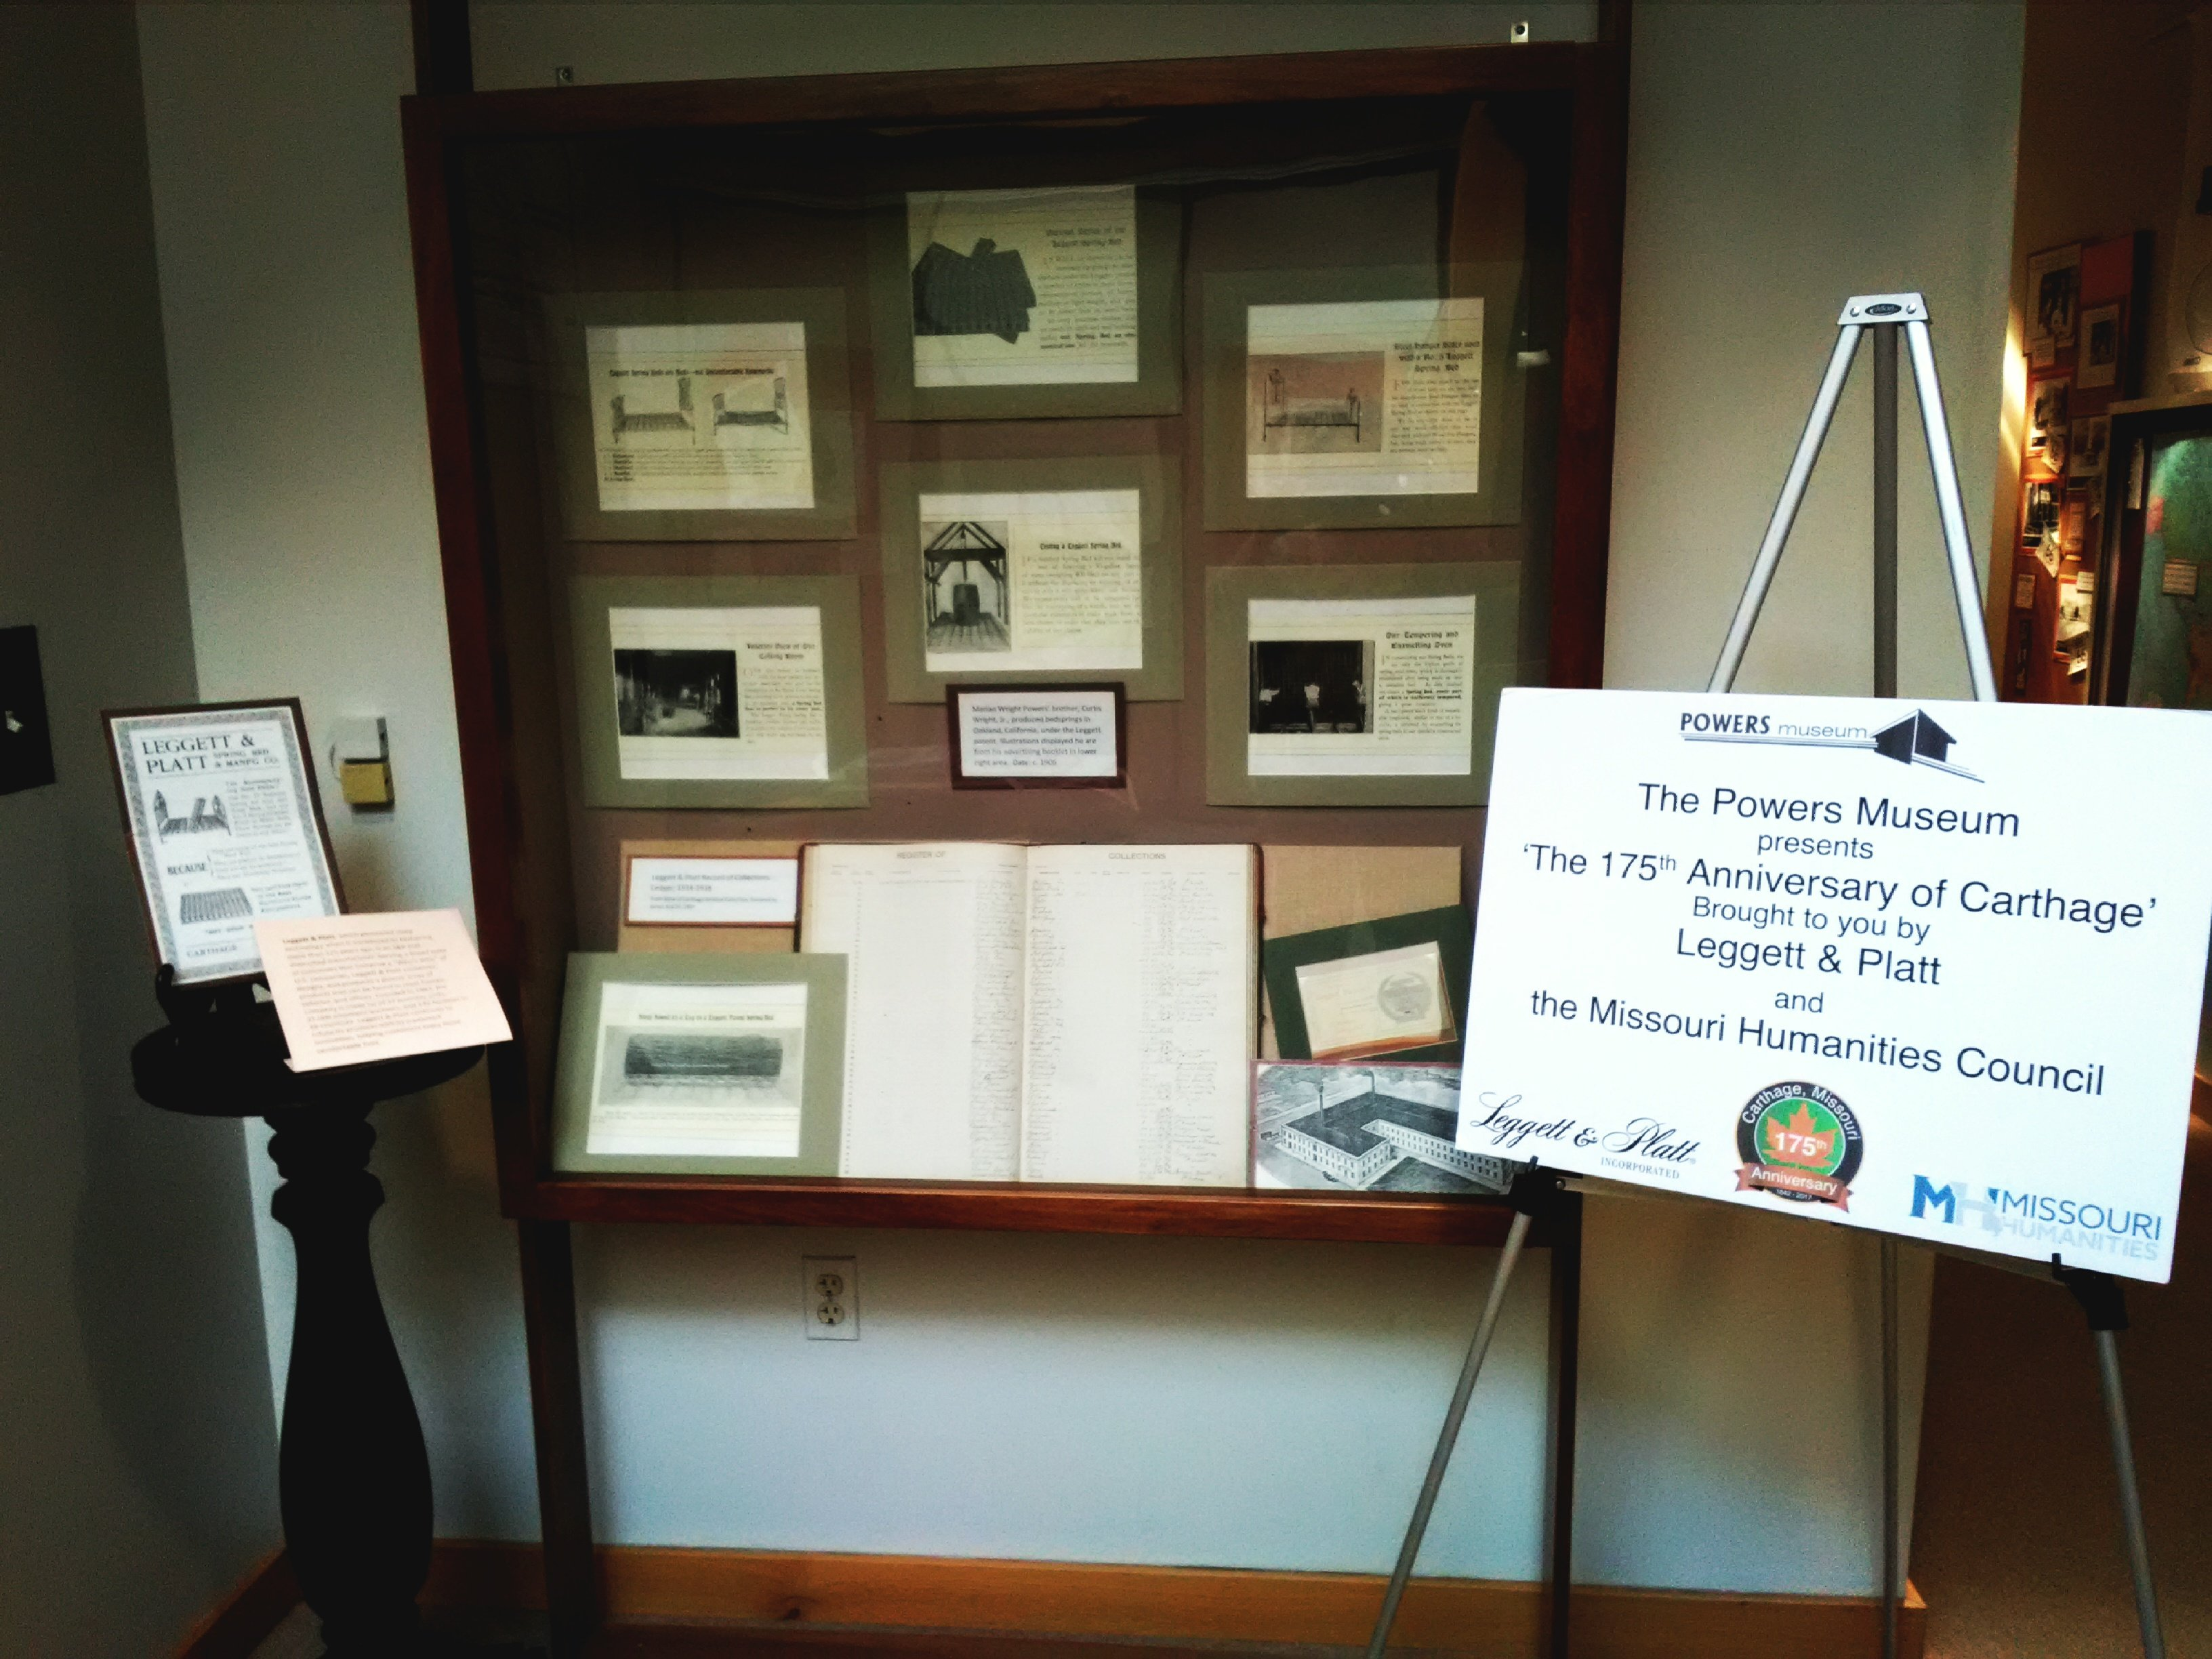 Leggett and Platt display at Powers Museum for 175th Anniversary of Carthage 2017 Exhibit.